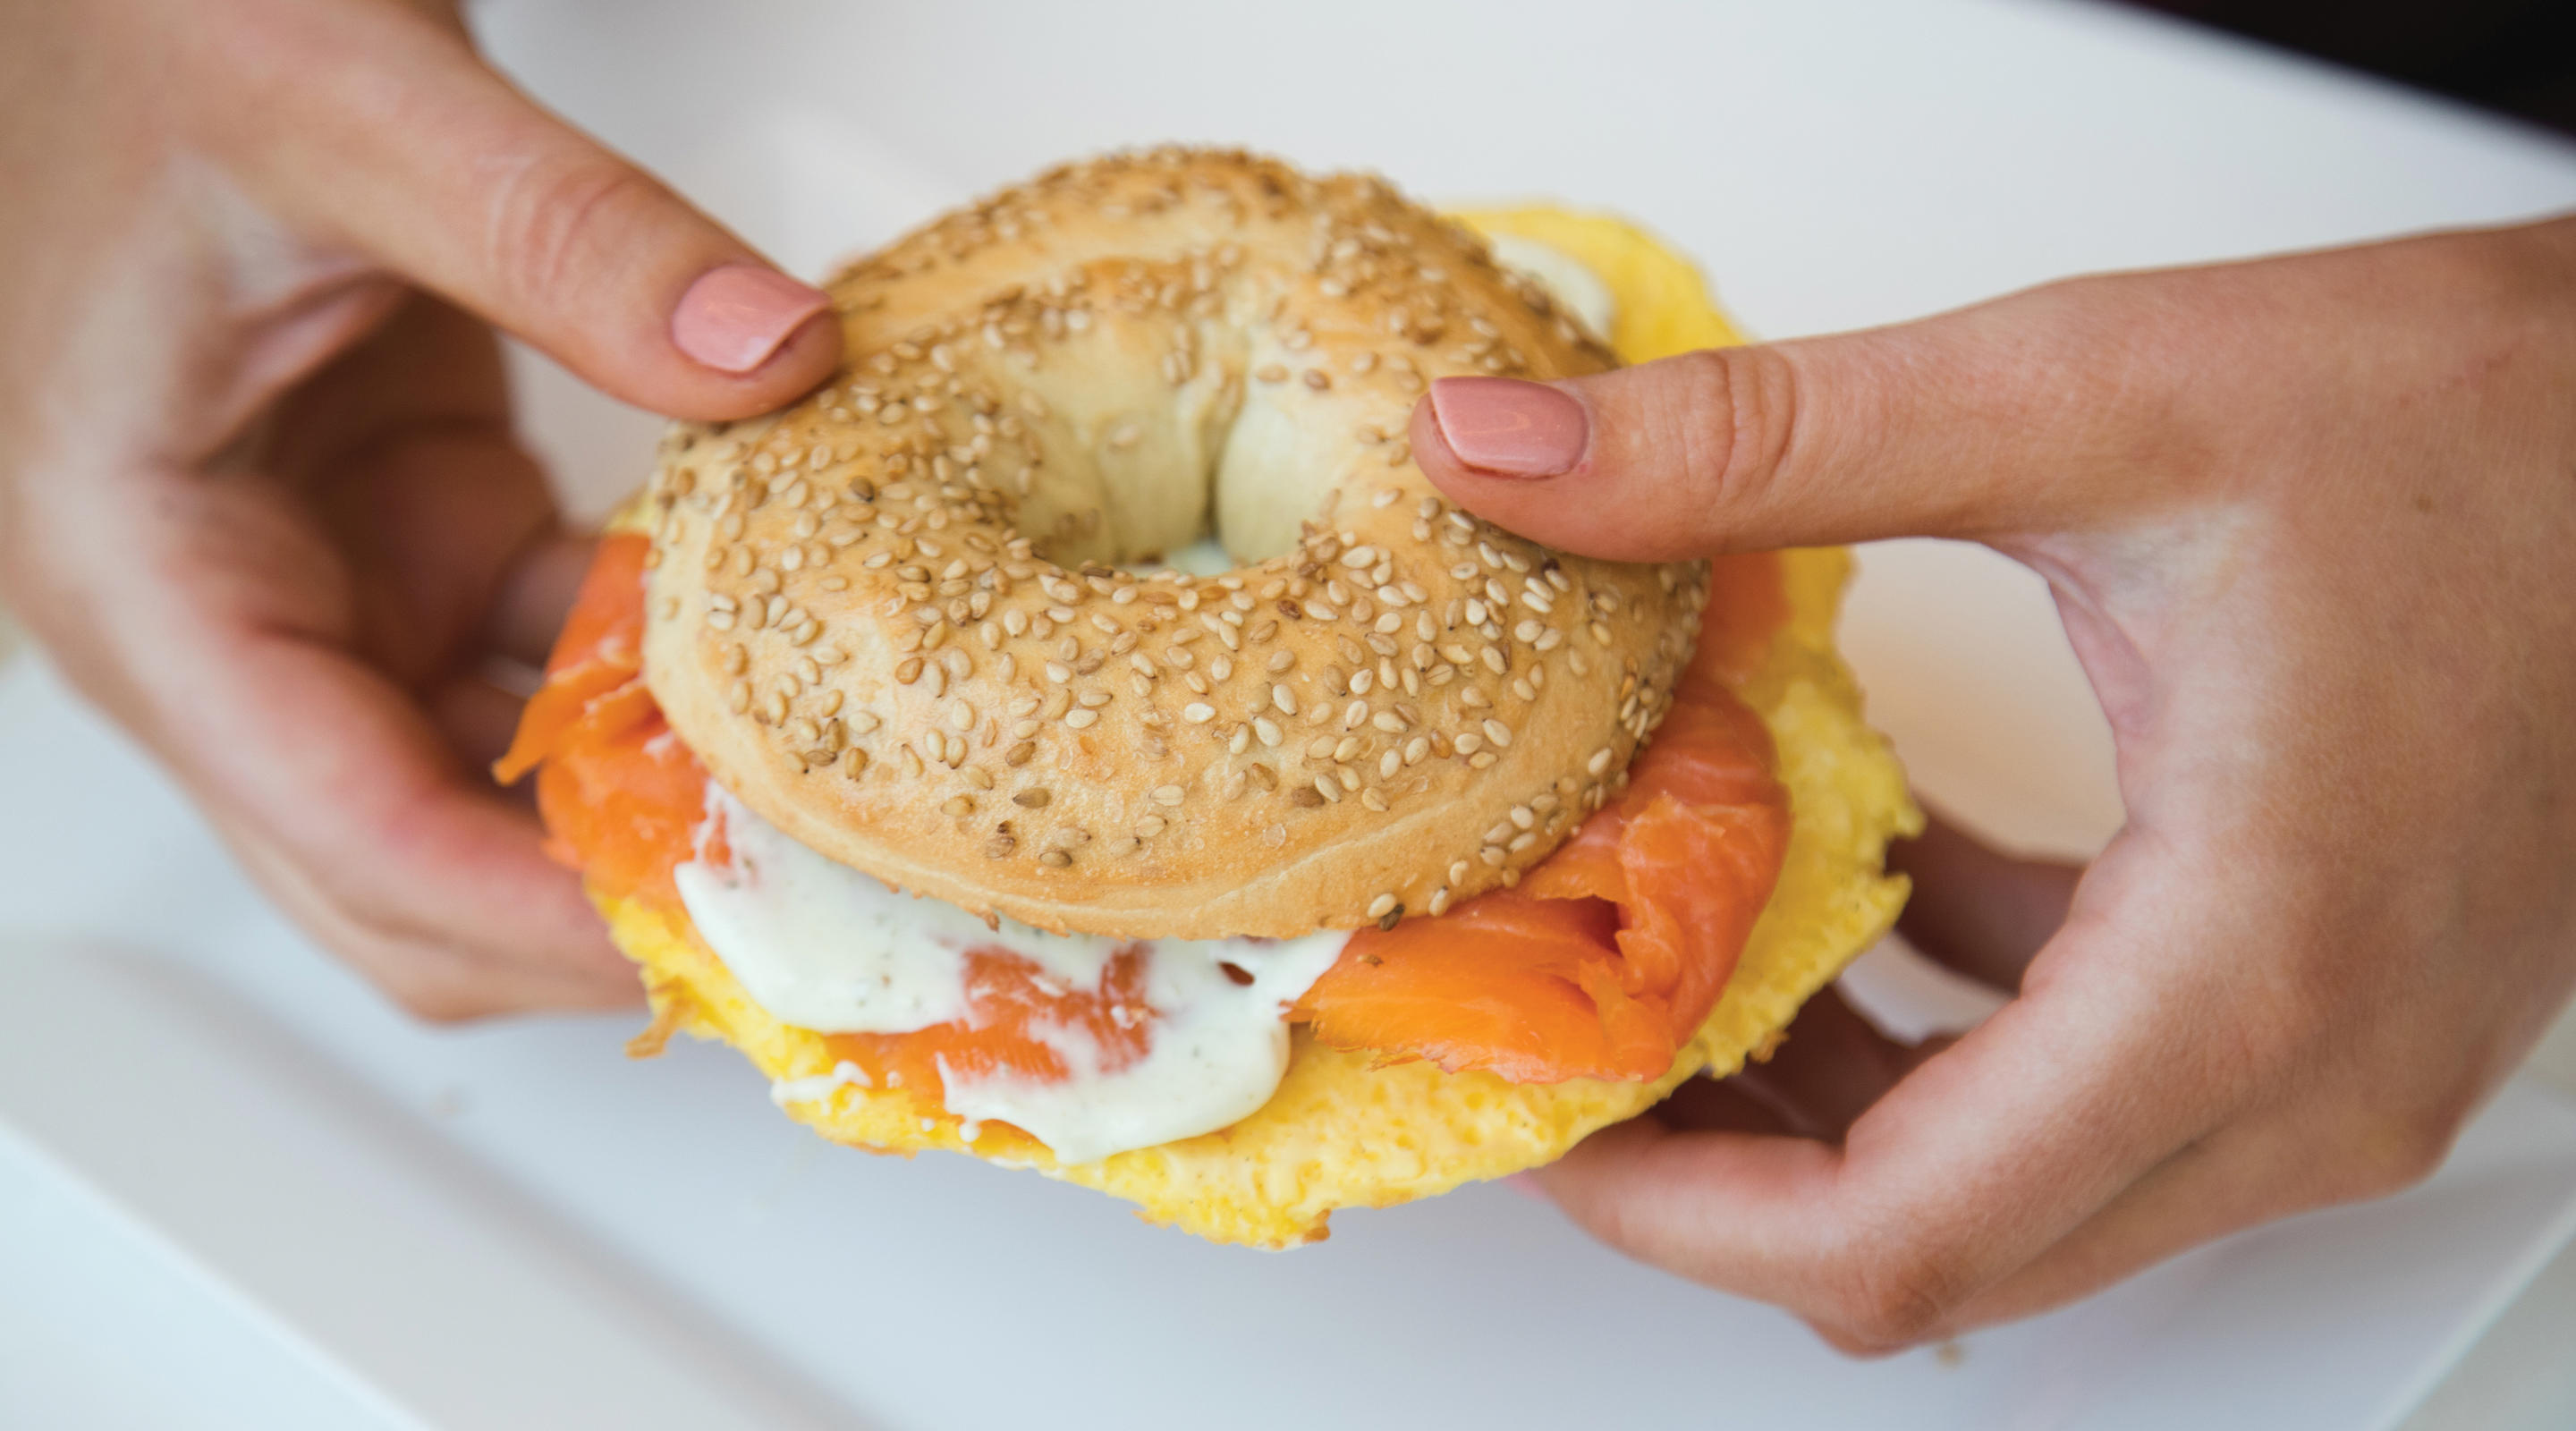 Lox and egg on a sesame seed bagel.